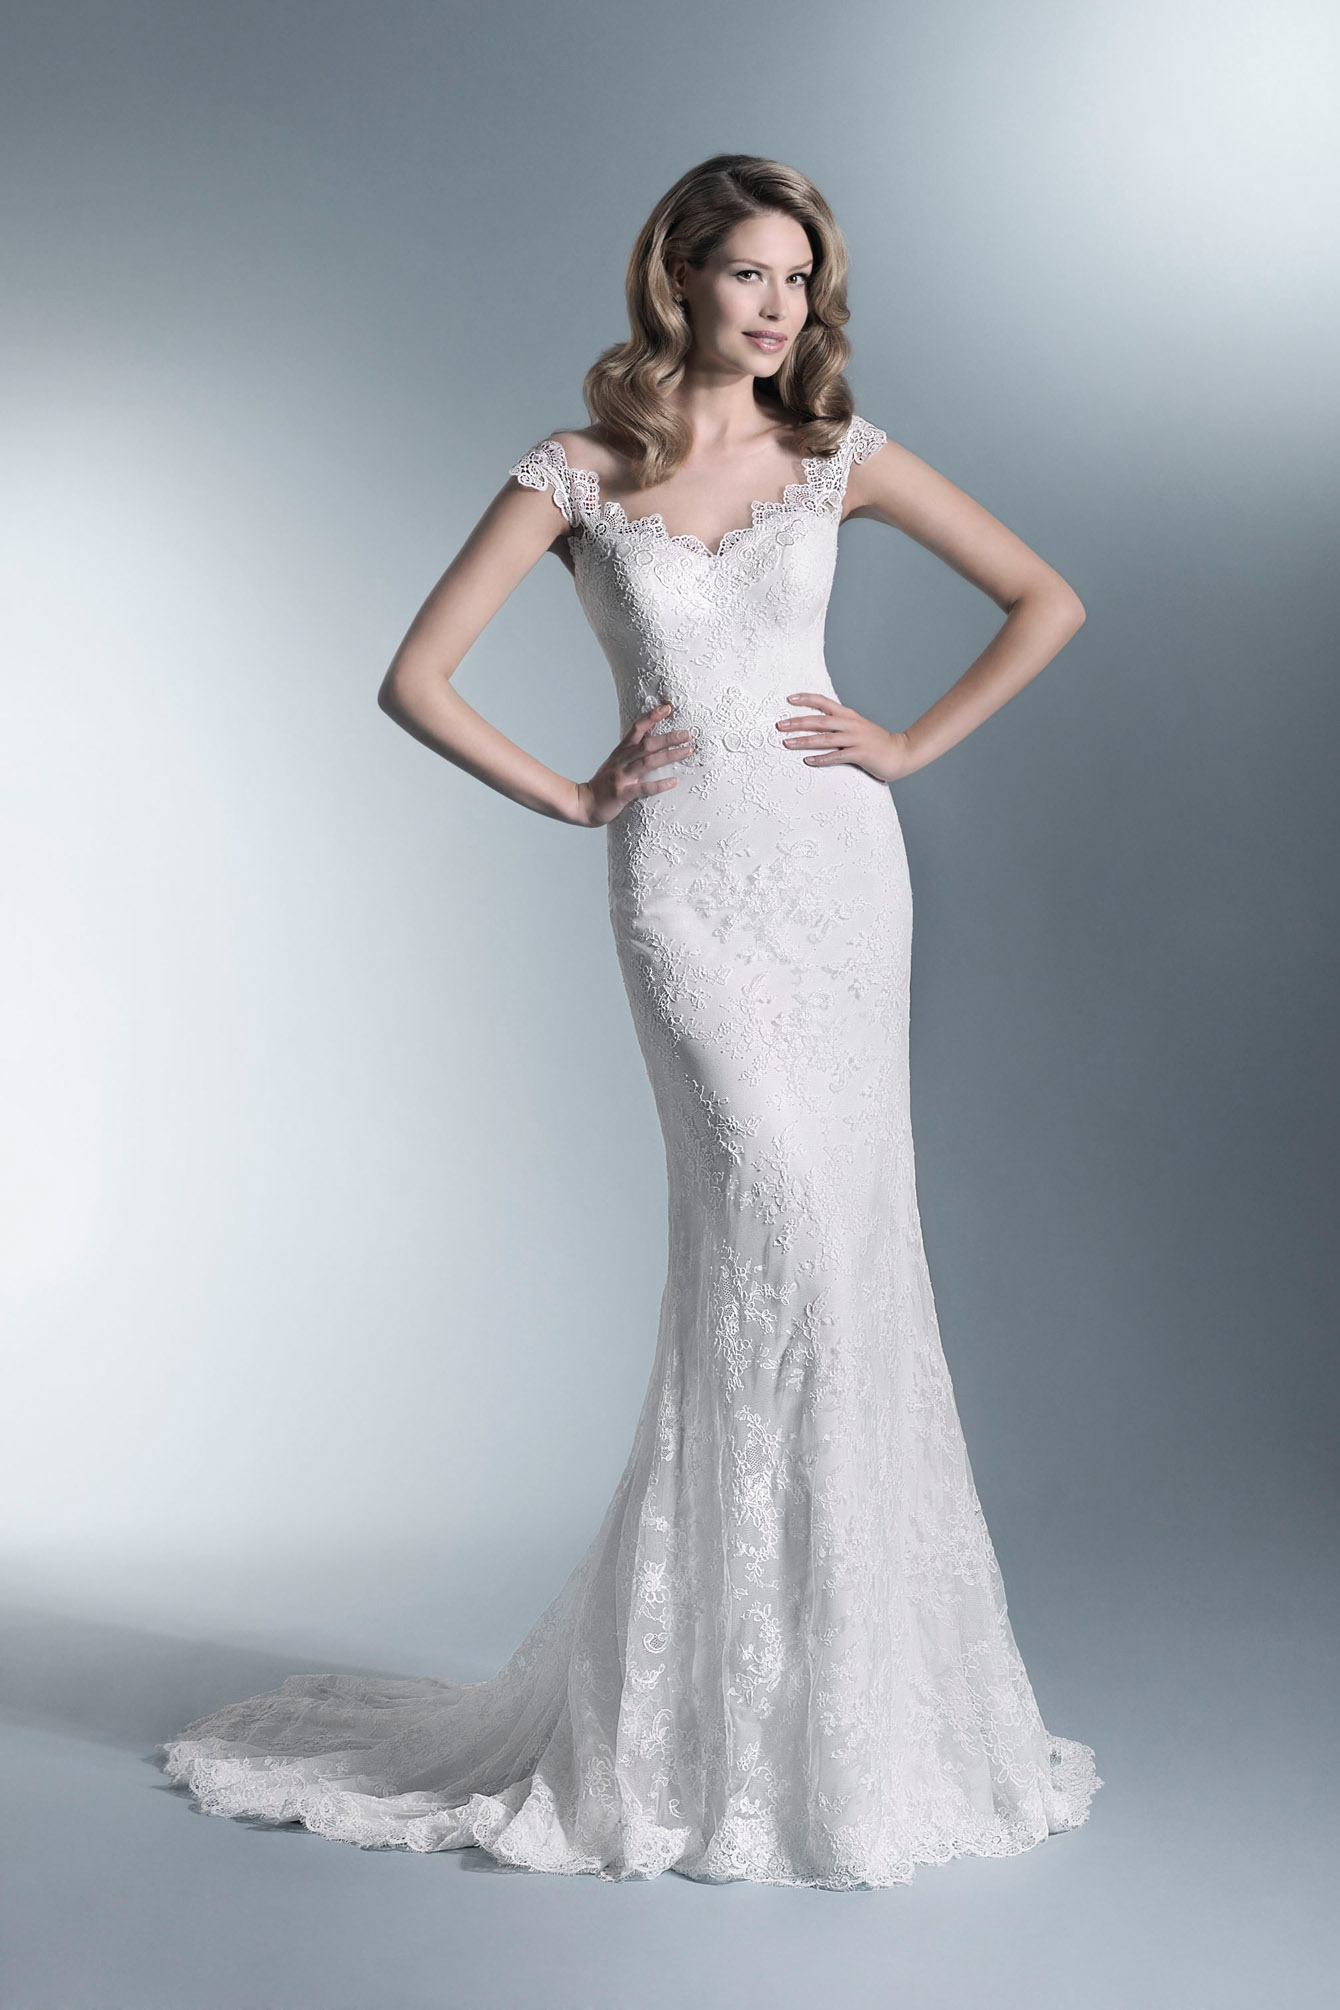 TO-662T - The One 2017 - Wedding dresses - Agnes - lace wedding ...